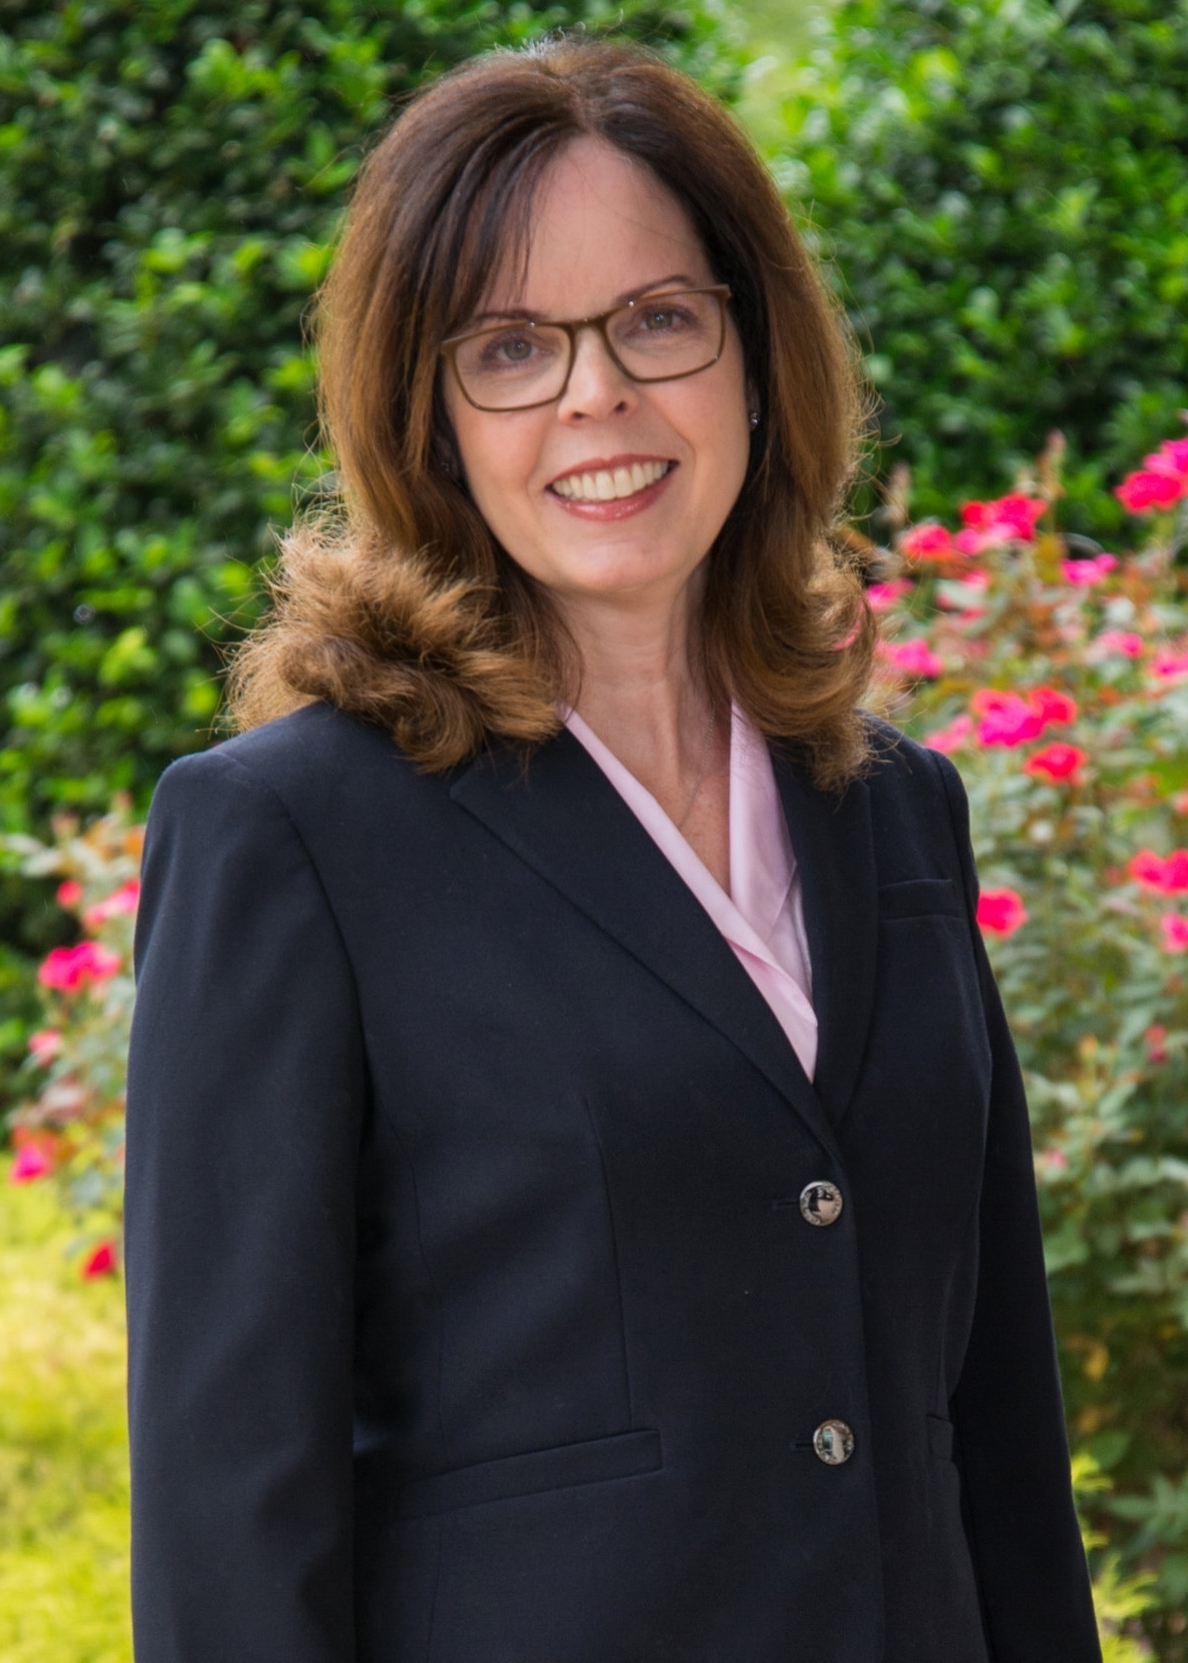 Shannon Hodge - Chief Financial Officer